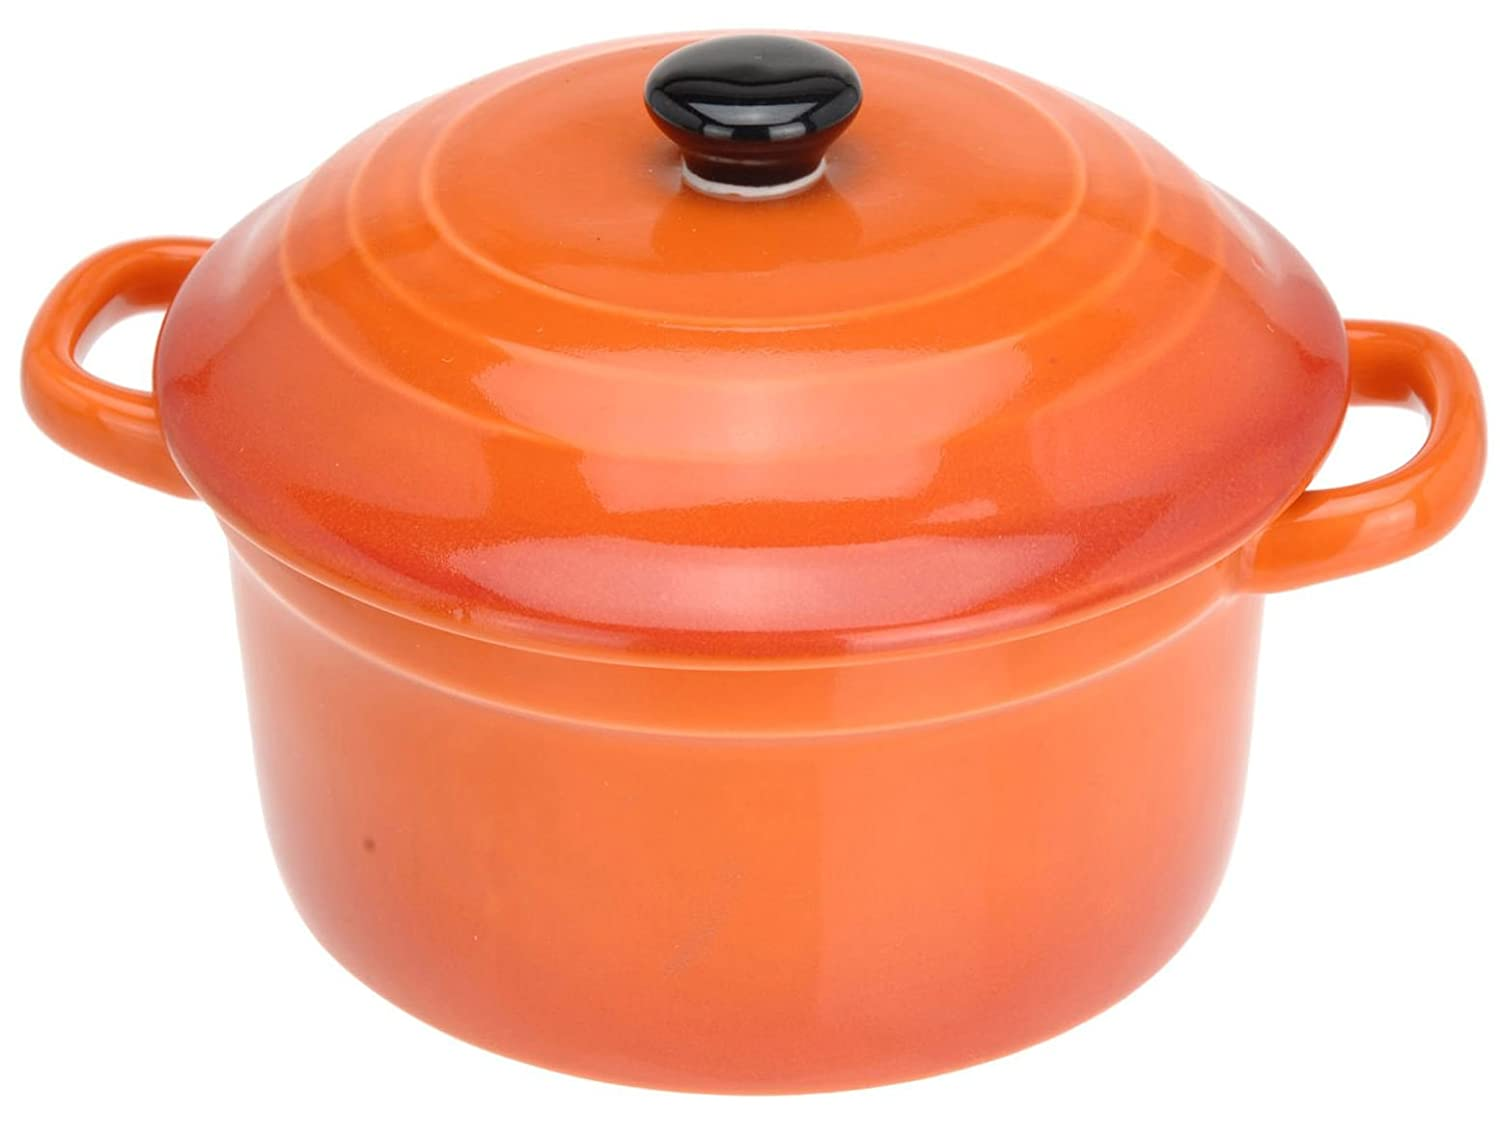 Carousel Home and Gifts Ovenproof Ceramic Porcelain Pan Mini Casserole Oven Dish Cocotte With Lid 10cm - Orange